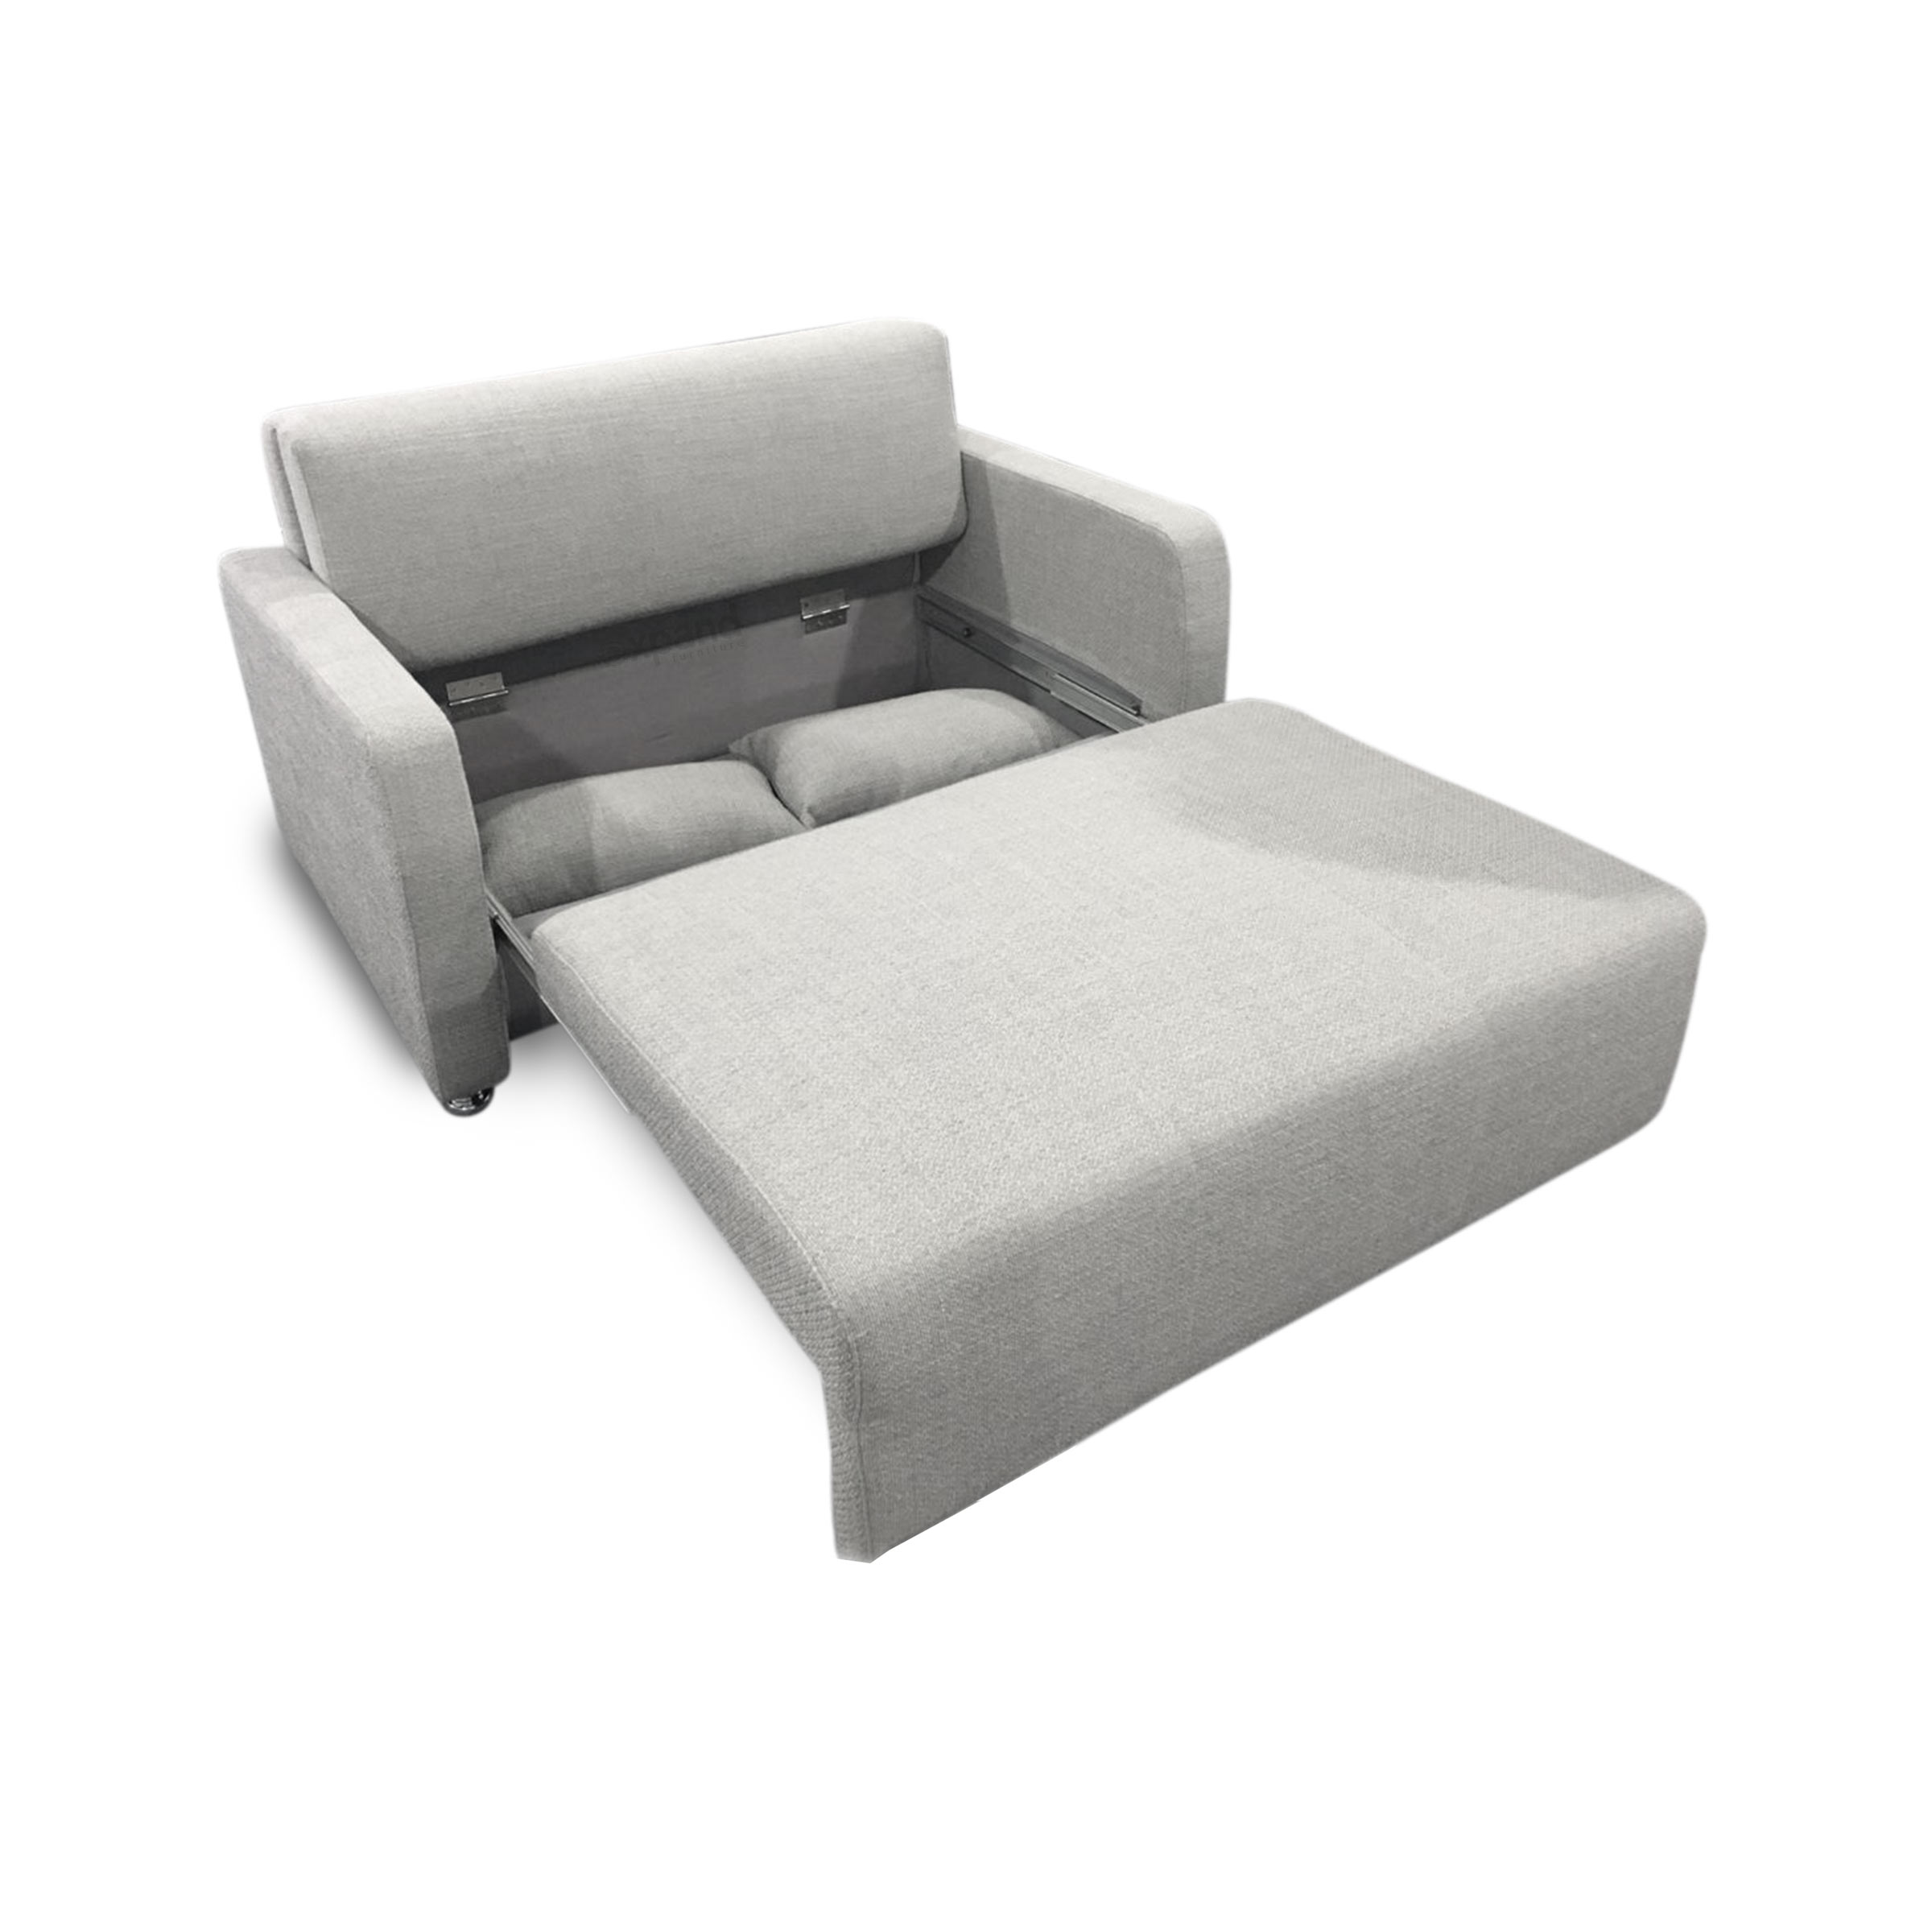 The Talia Double Sofa Bed With Storage Expand